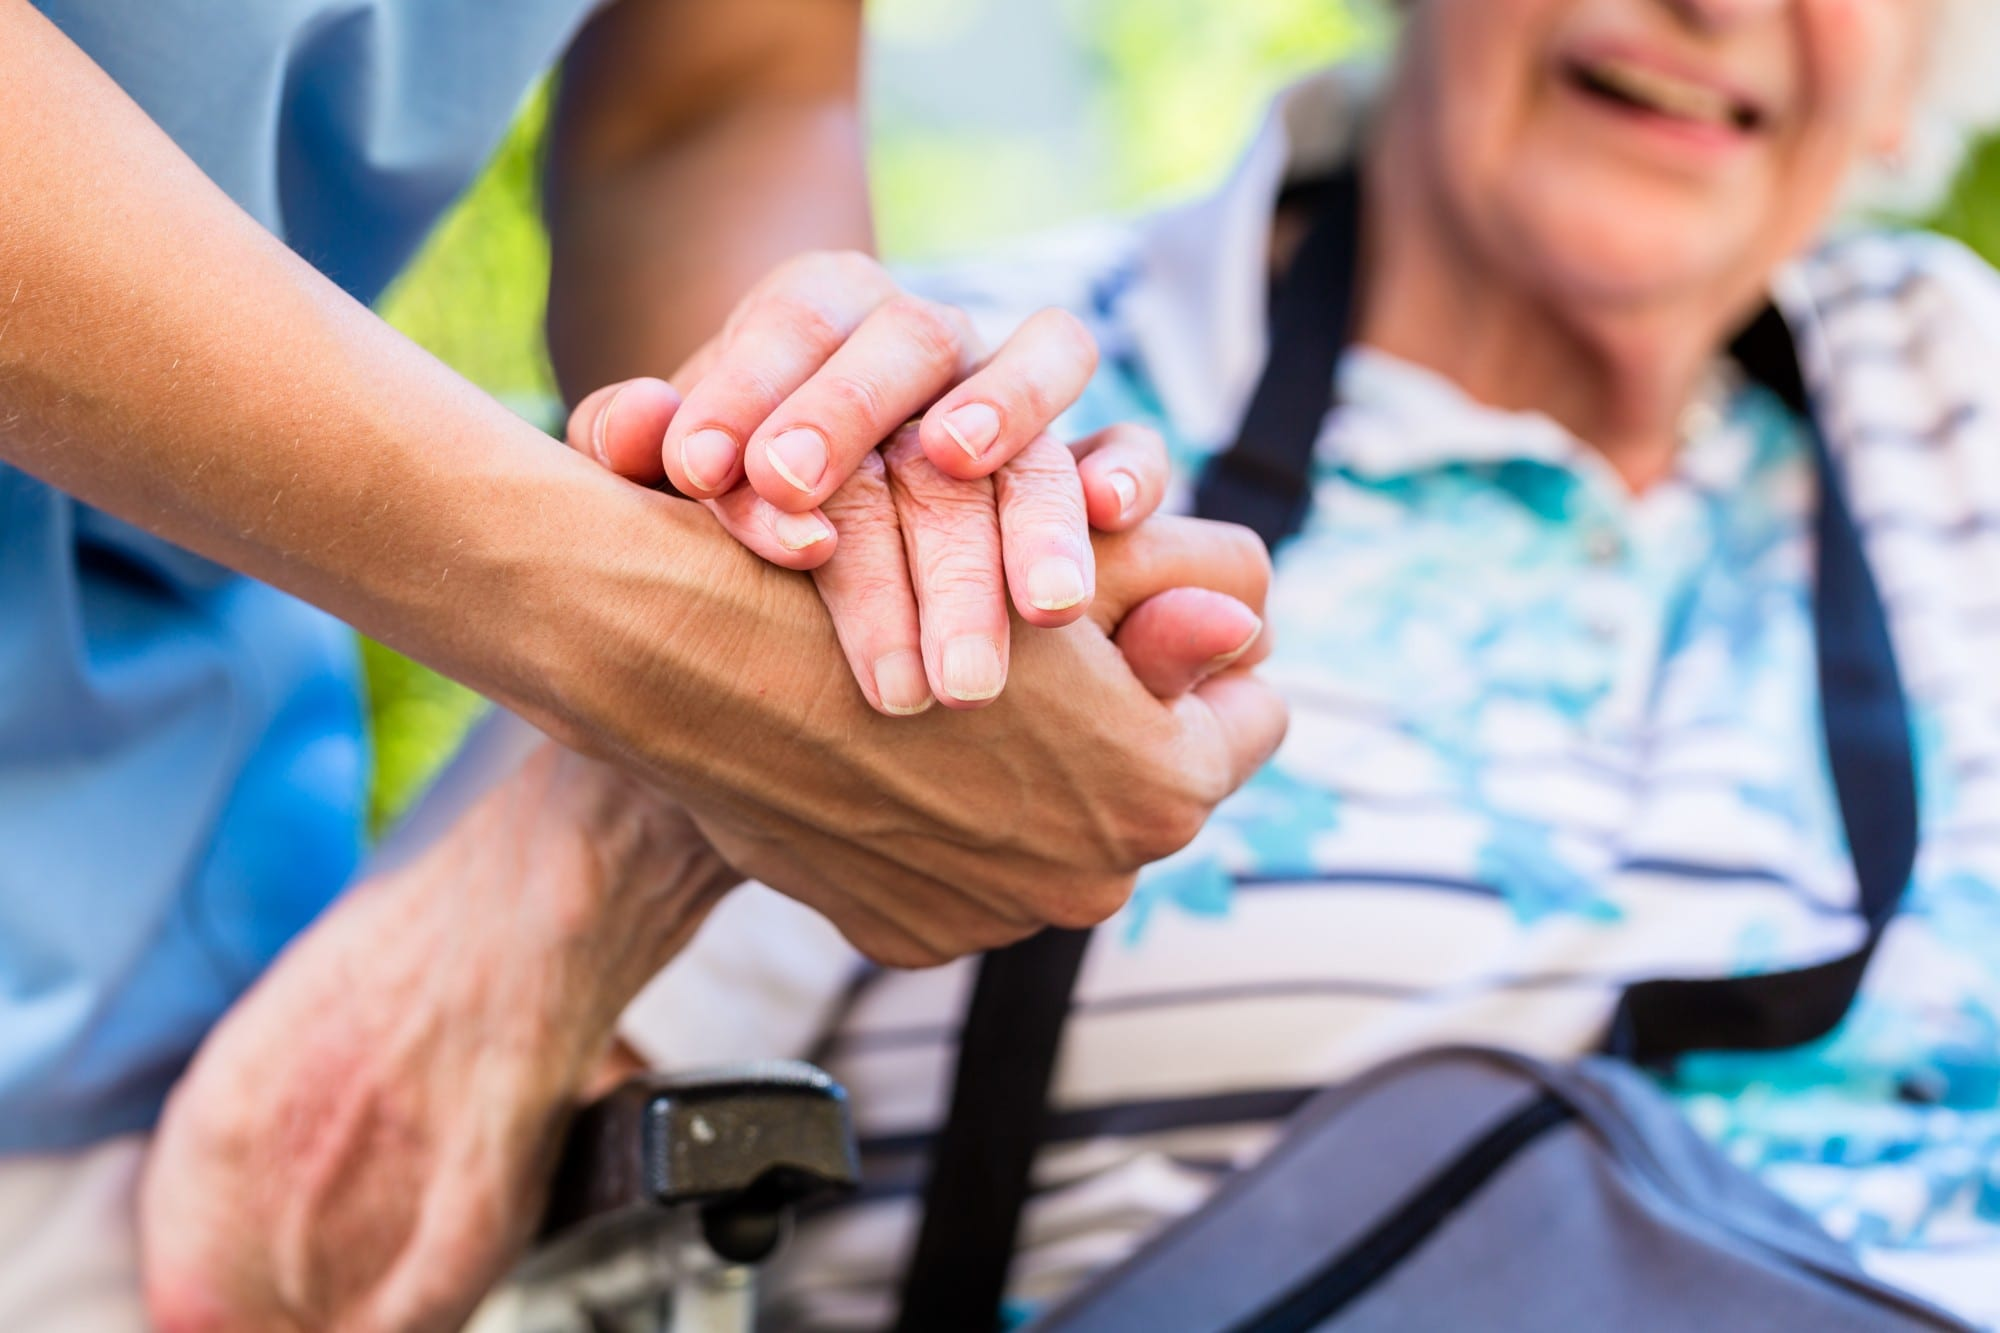 8 Things to Look for in a Great Senior Assisted Living Community